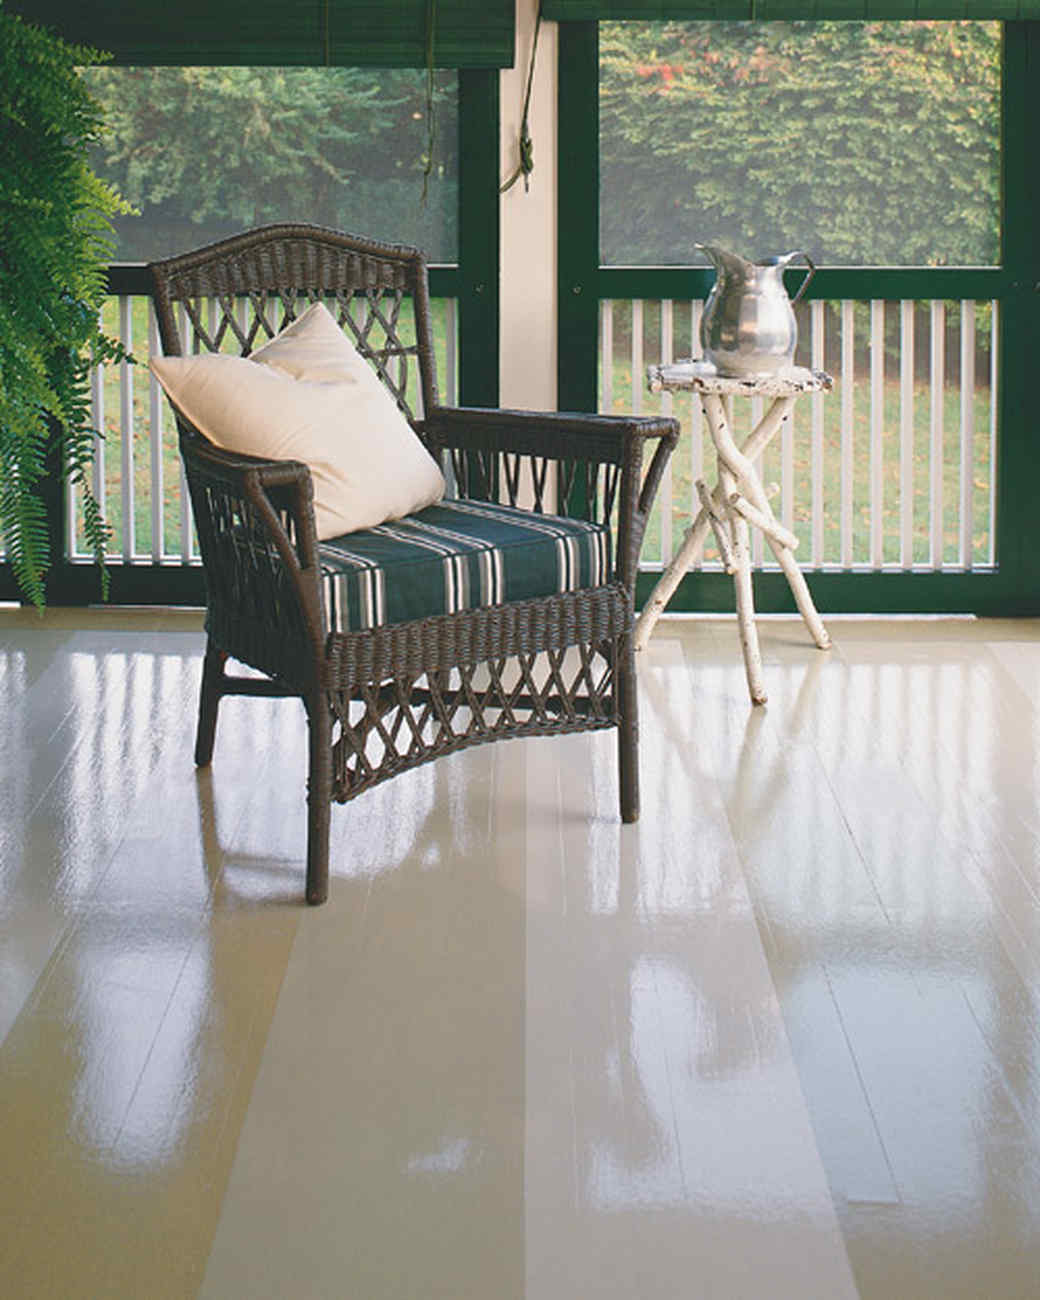 Design Floor Painting Ideas 5 fresh ways to paint your floors martha stewart